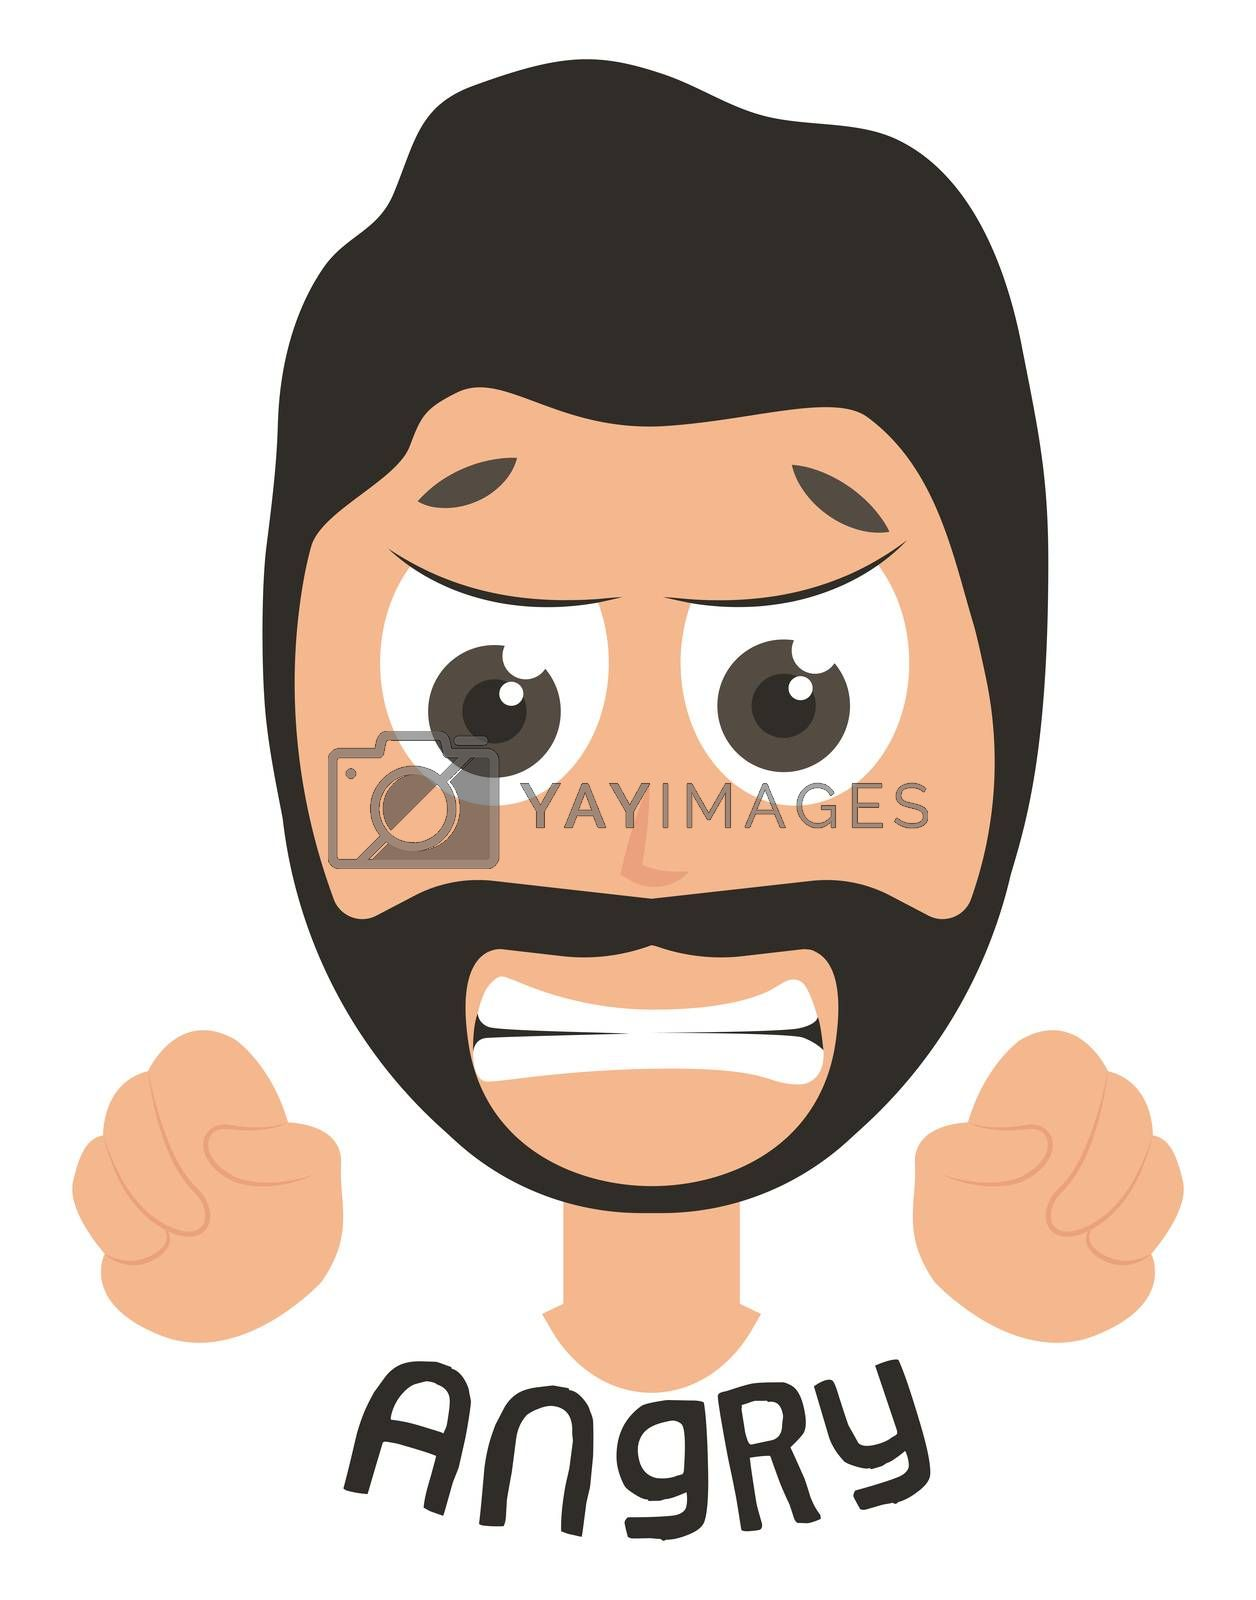 Angry man emoji, illustration, vector on white background